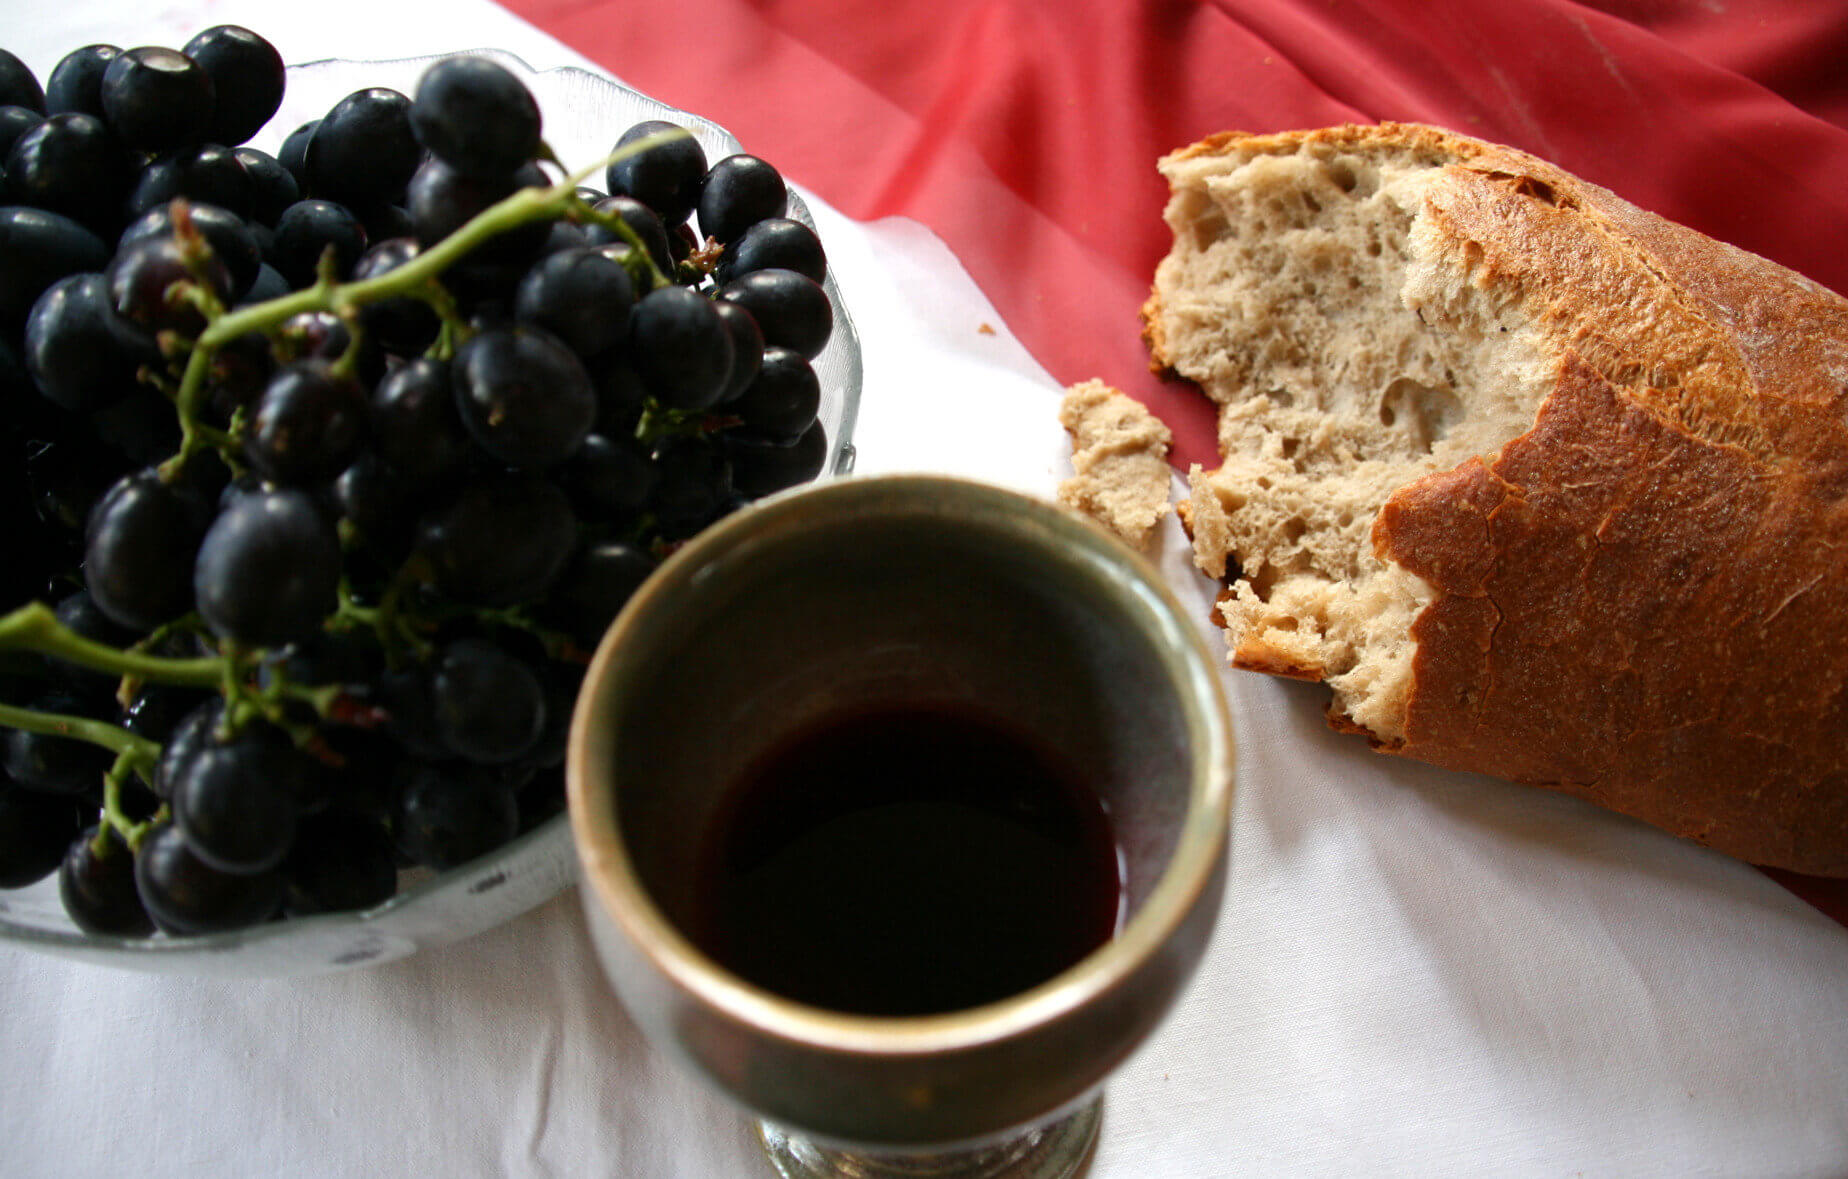 Image result for image of the lord's supper